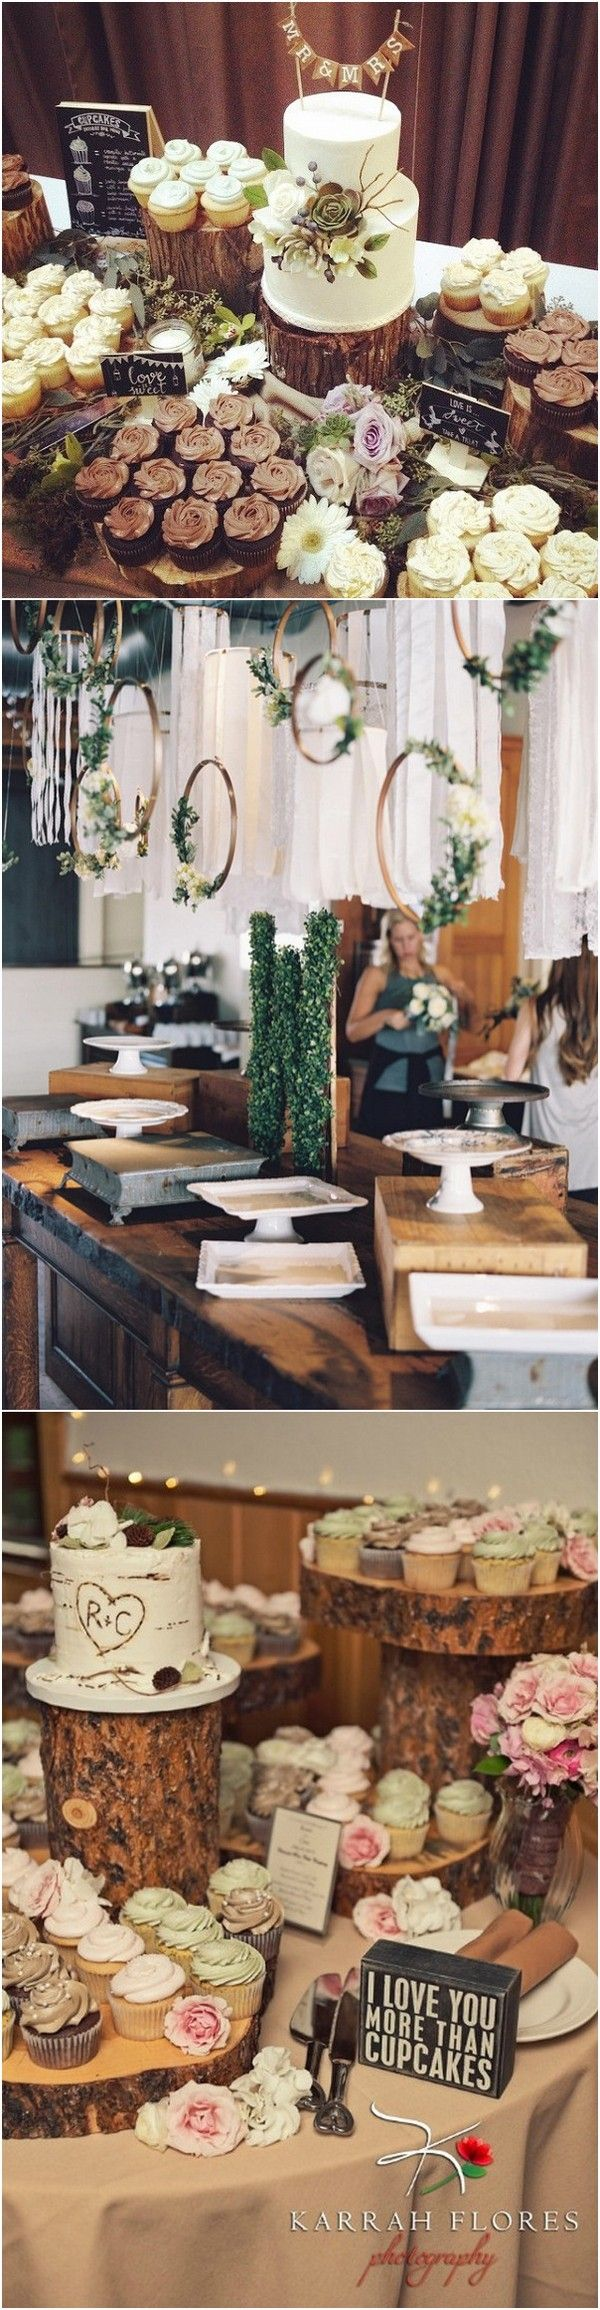 16 country rustic wedding dessert table ideas page 2 of 4 rh pinterest com